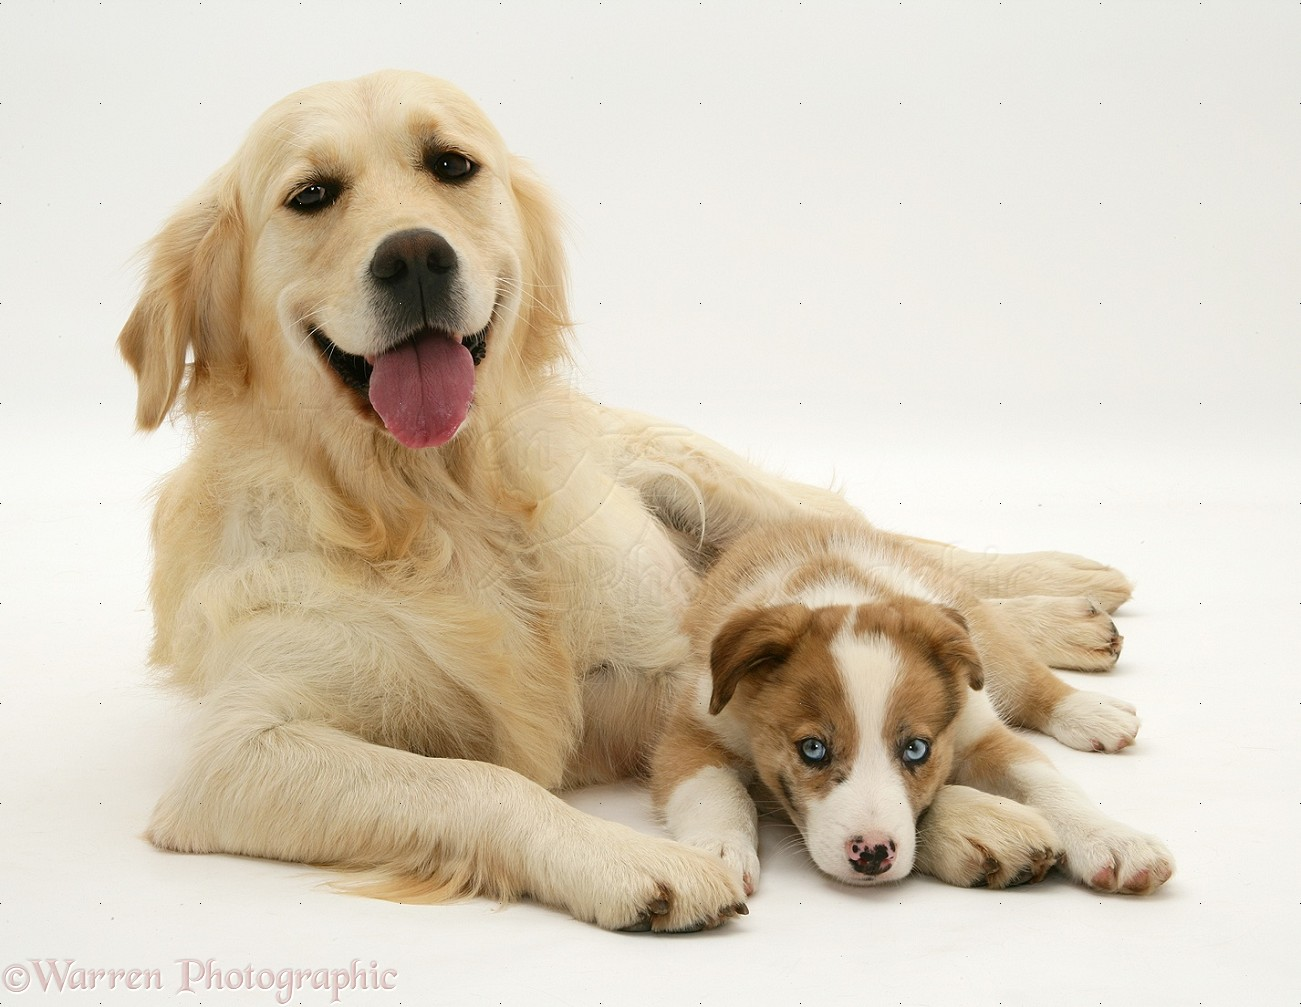 dogs golden retriever and border collie pup photo wp14039